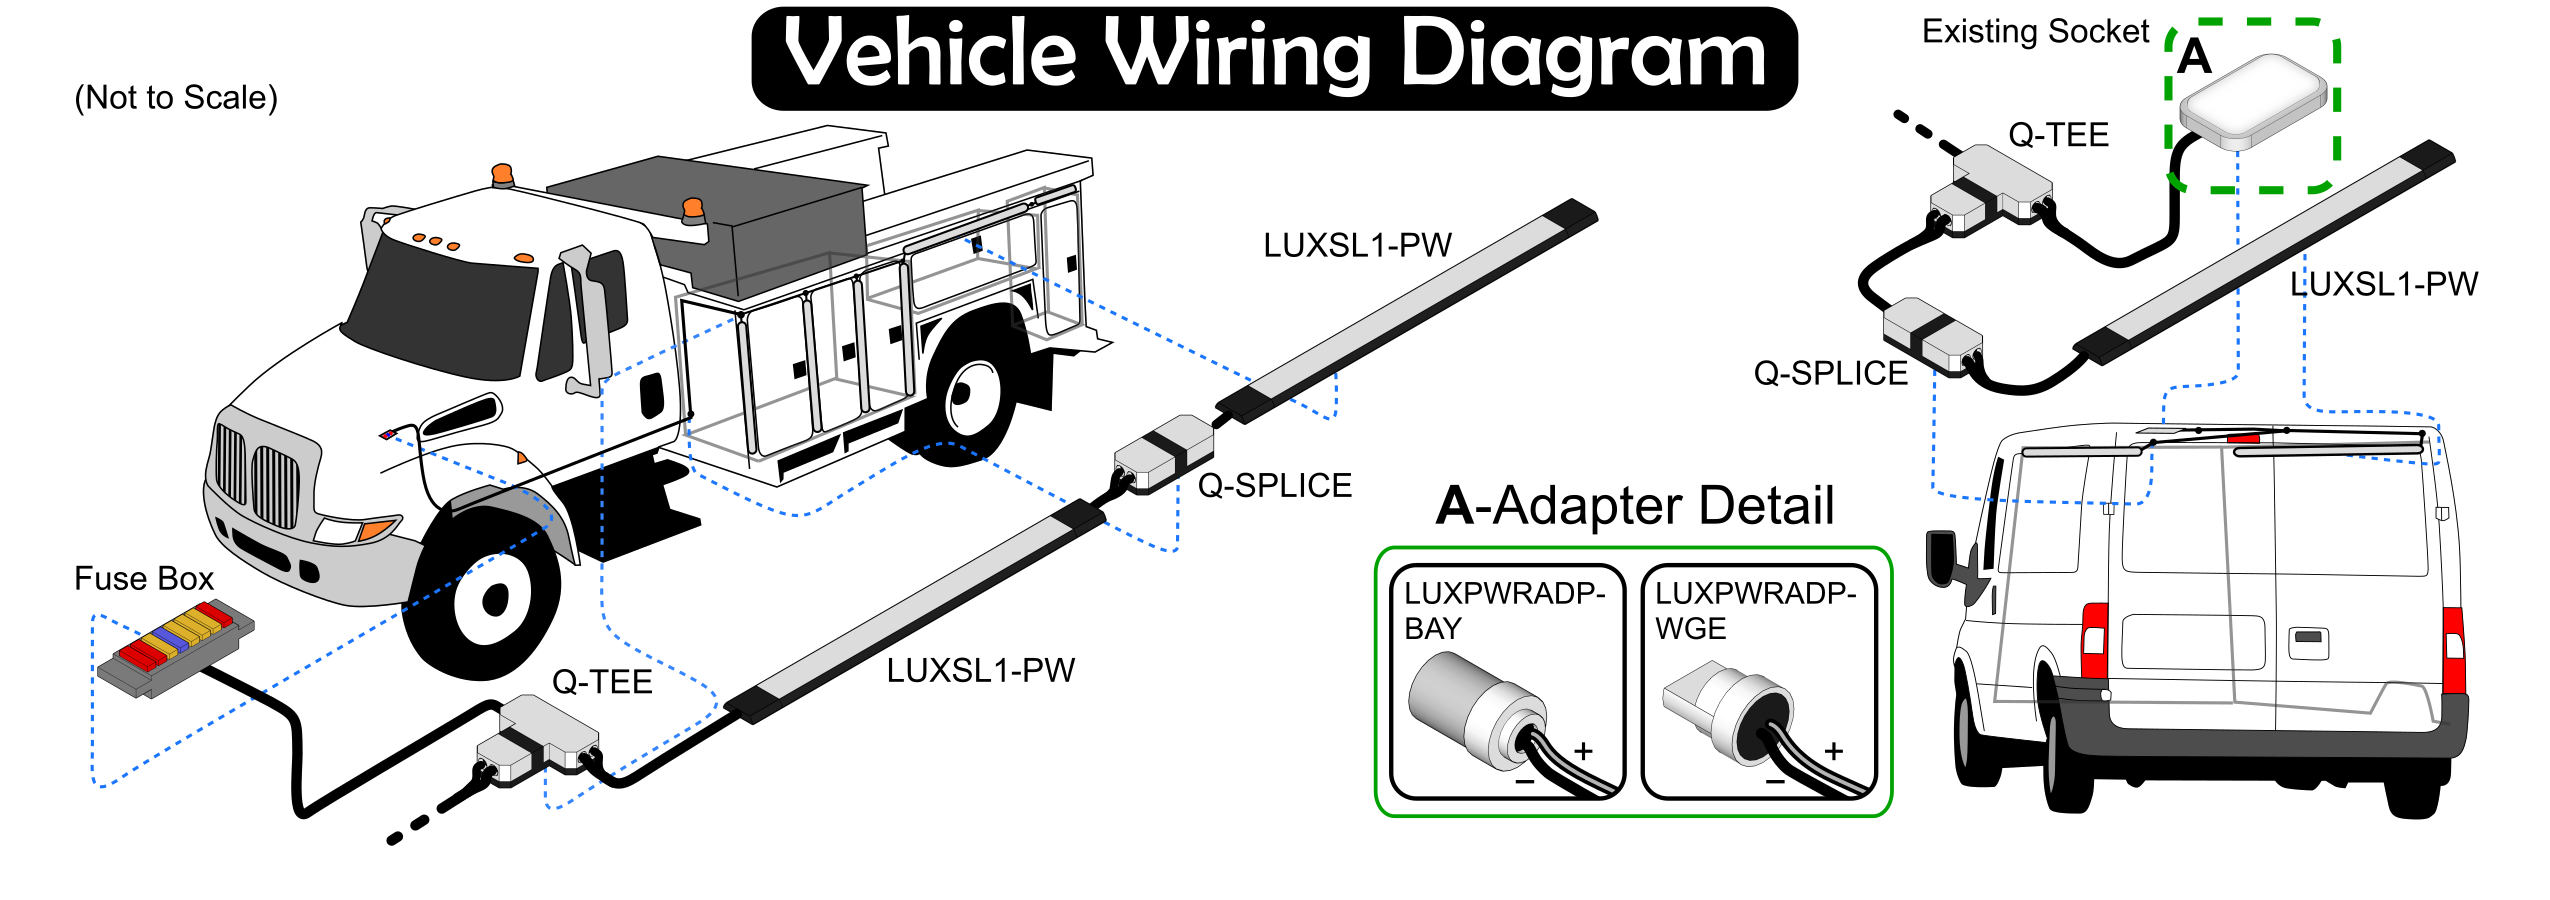 truck-diagram-08-2019.png